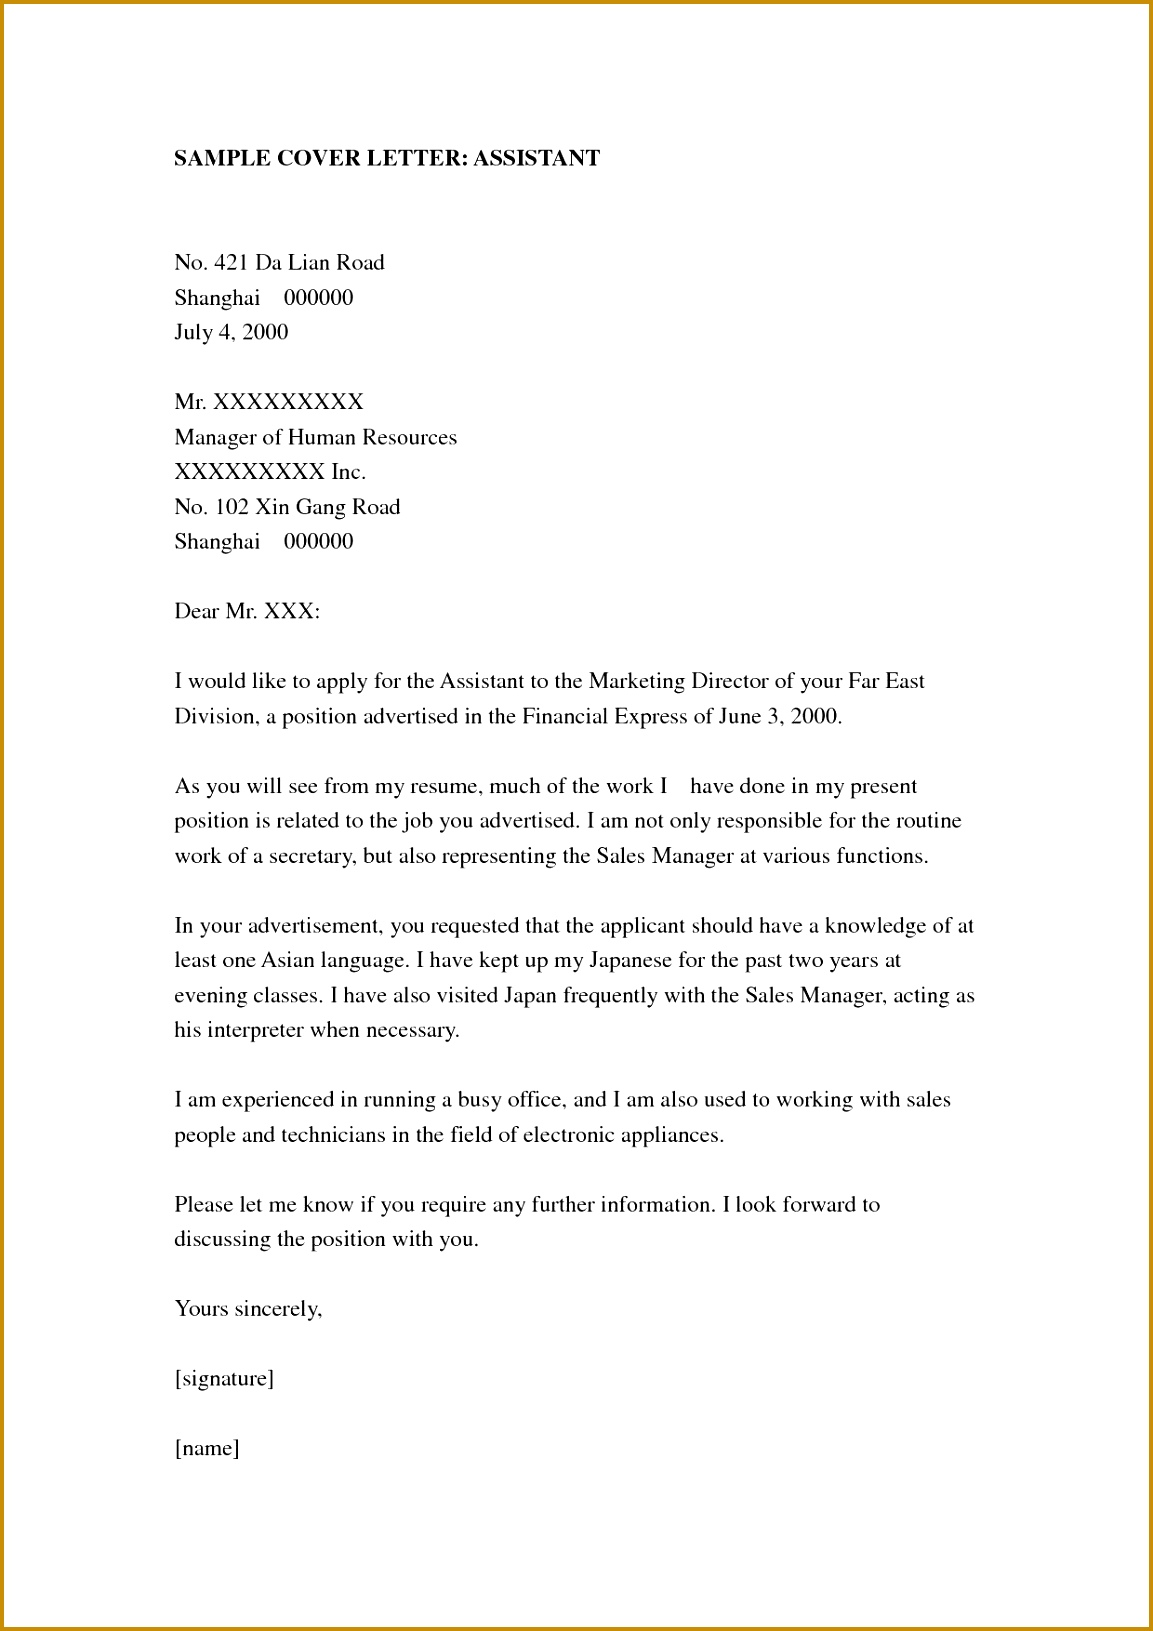 Cover Letter Examples for Administrative assistant Positions Awesome Helping Your Child S Speech Pregnancy and Baby 16311153